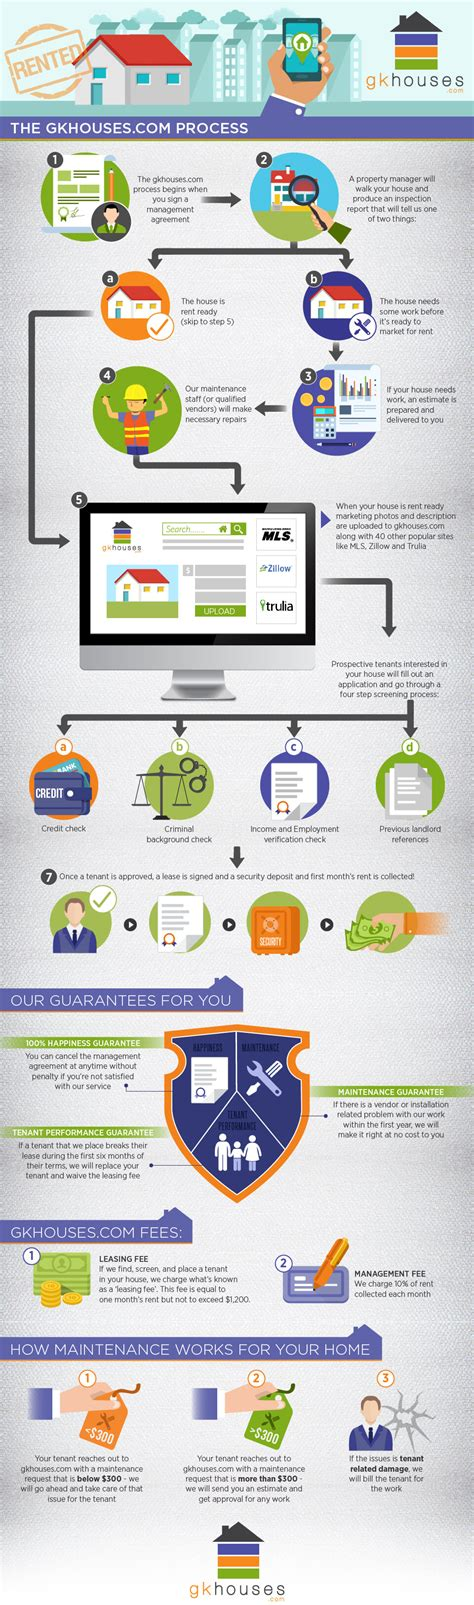 gk houses gk houses property value management infographic grafic guru